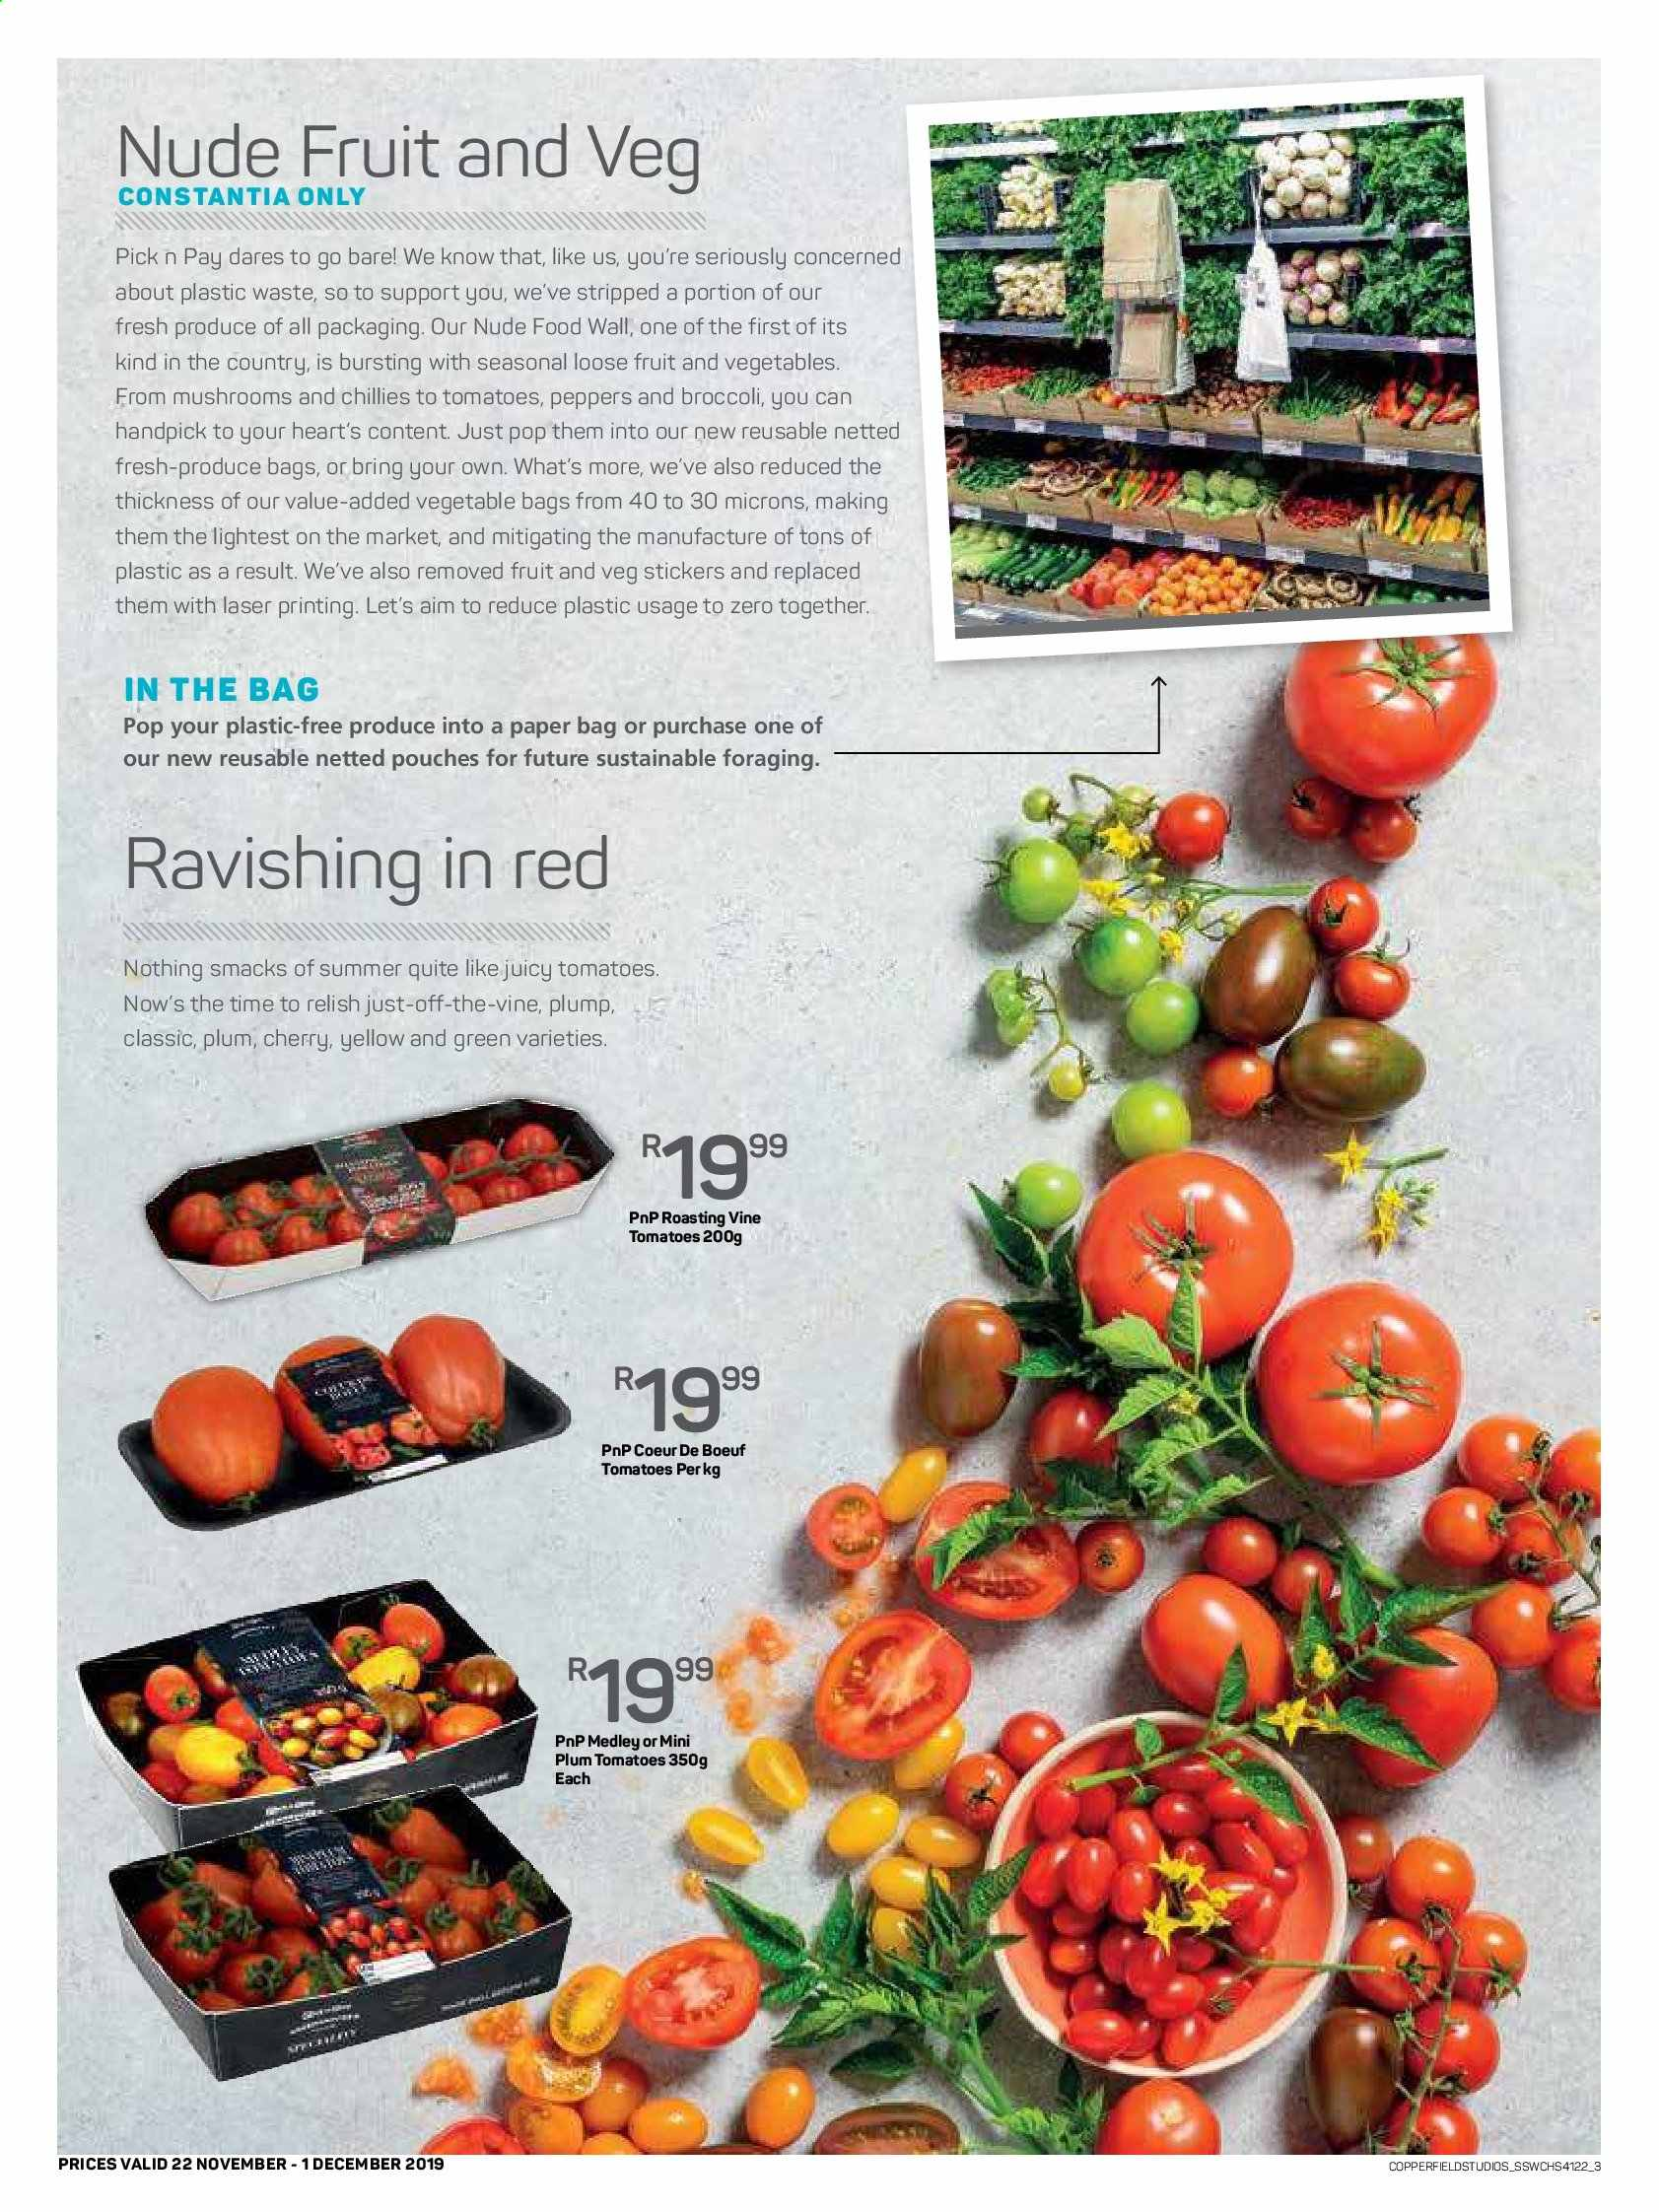 Pick n Pay catalogue  - 11.22.2019 - 12.01.2019. Page 3.